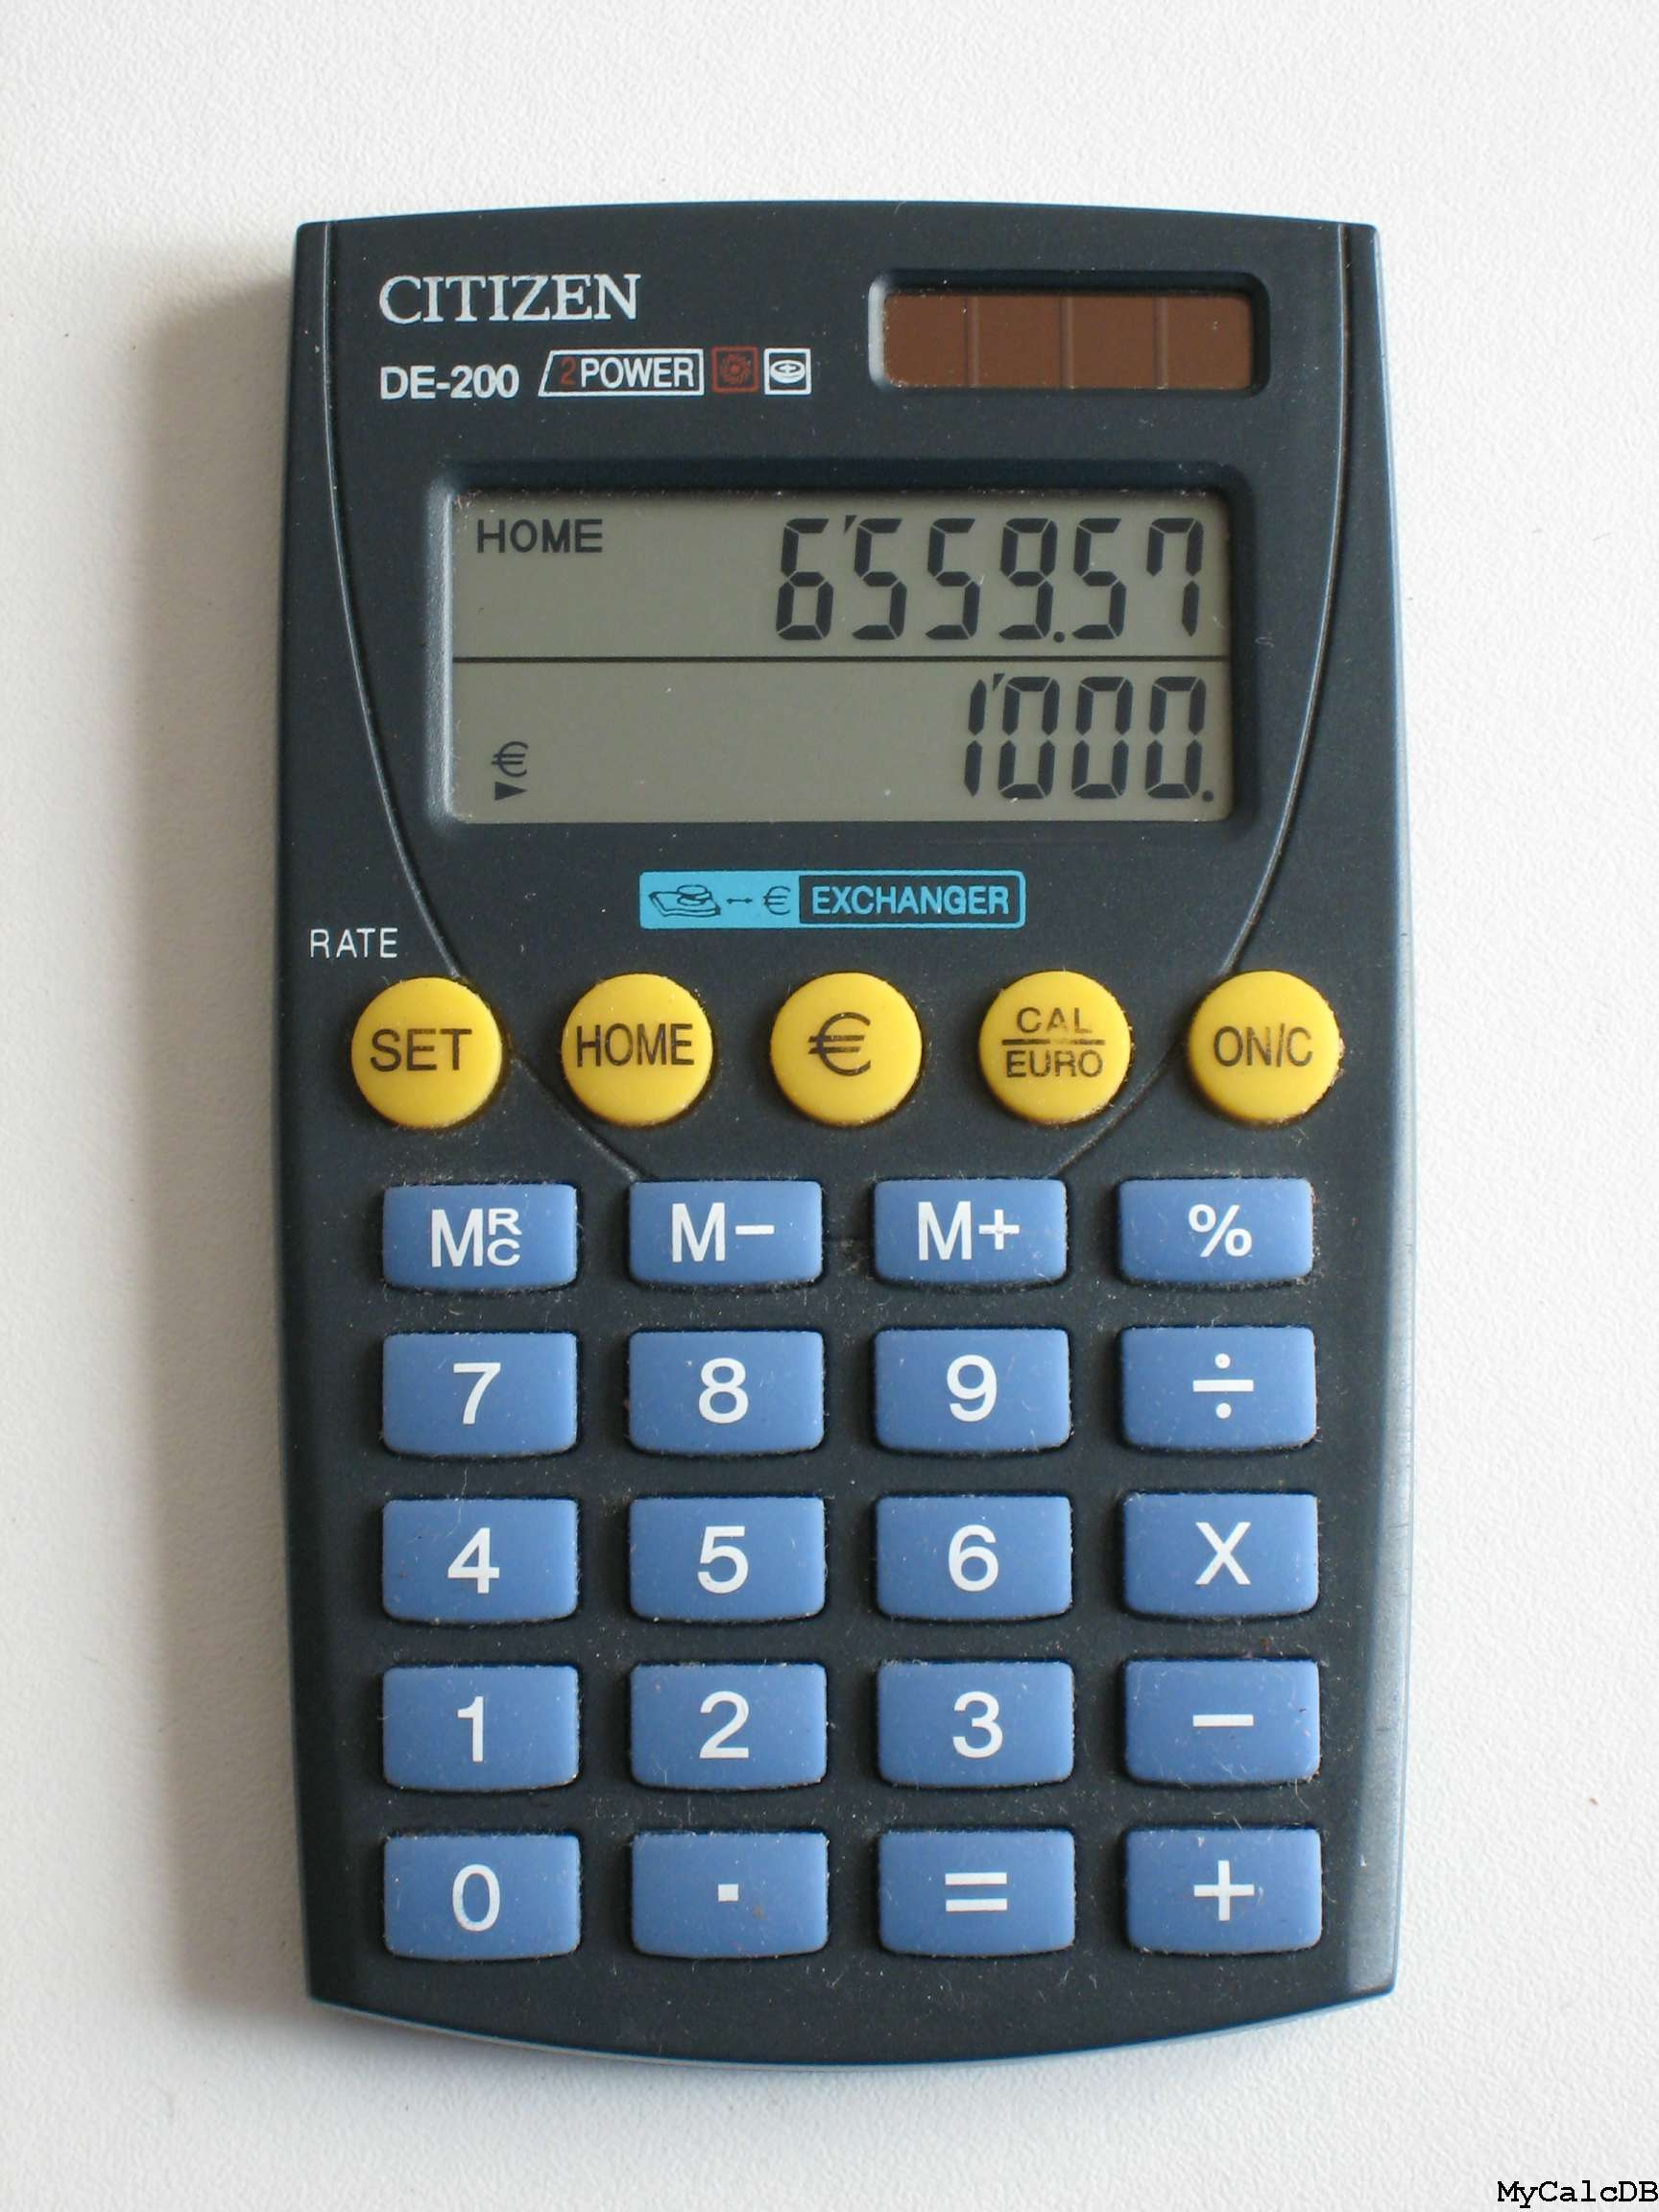 Citizen DE-200